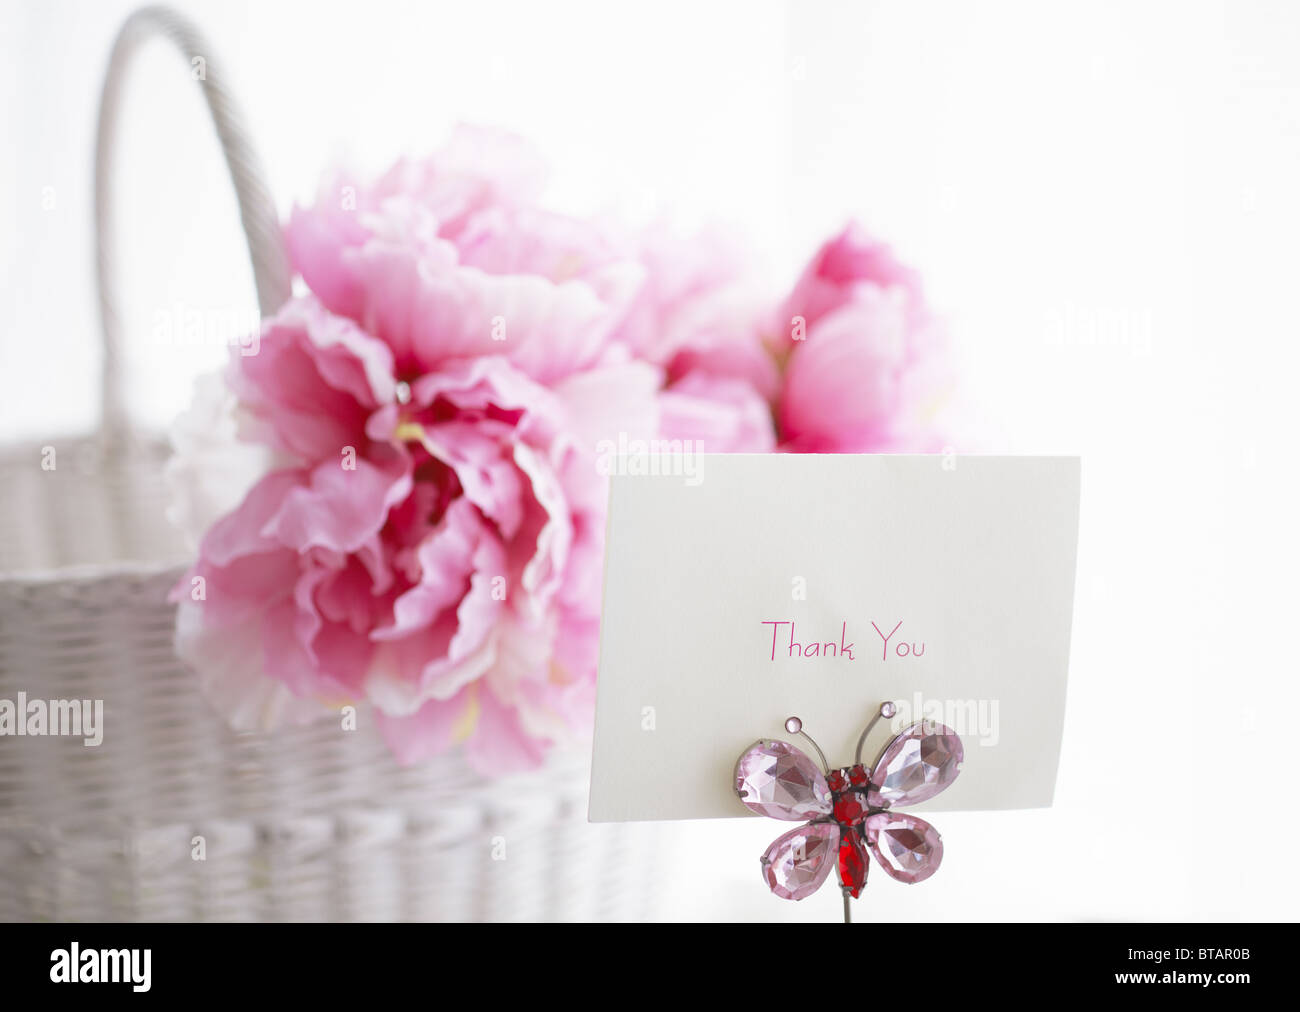 Carte Message et fleurs Photo Stock